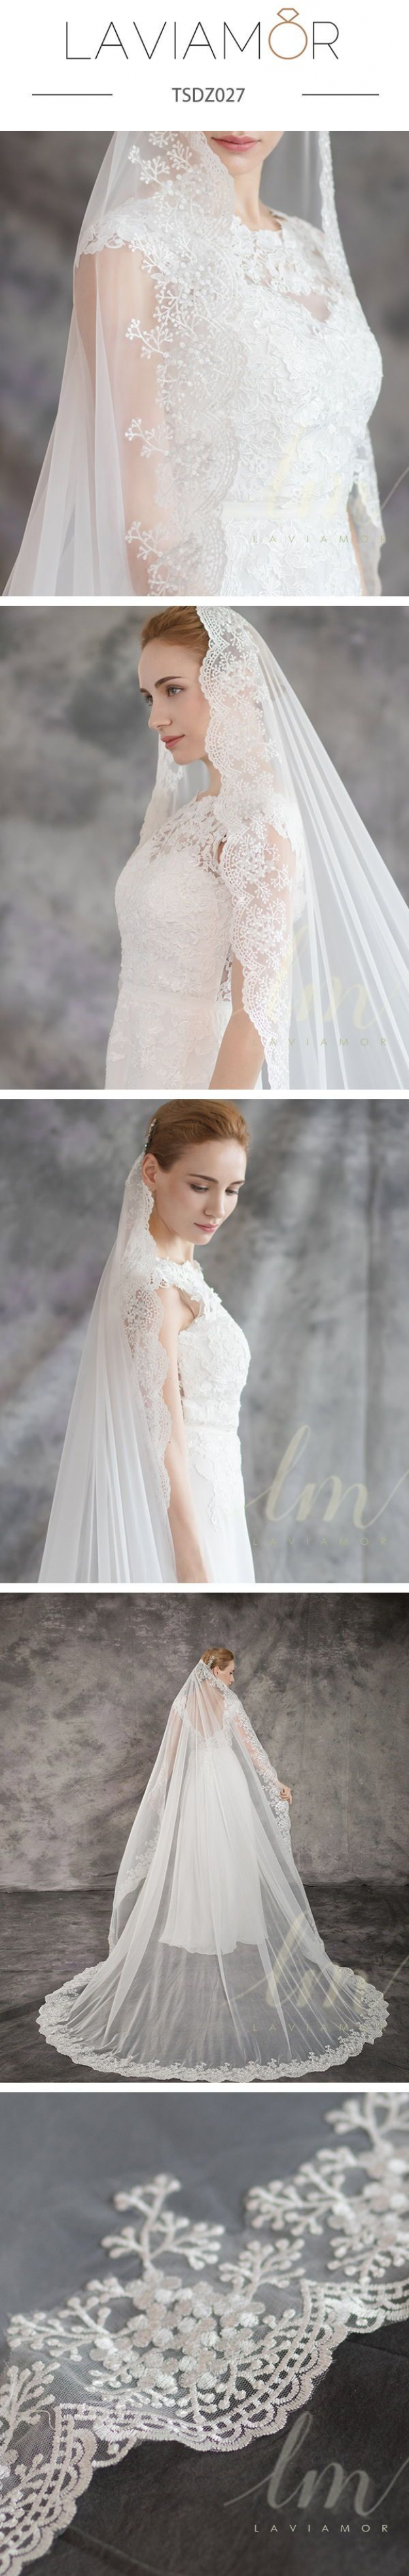 Laviamor Specializes In Customizing The Bridal Veils Follow Laviamordesign For More Ideas In 2020 Lace Cathedral Veil Blusher Veil Wedding Hairstyles With Veil